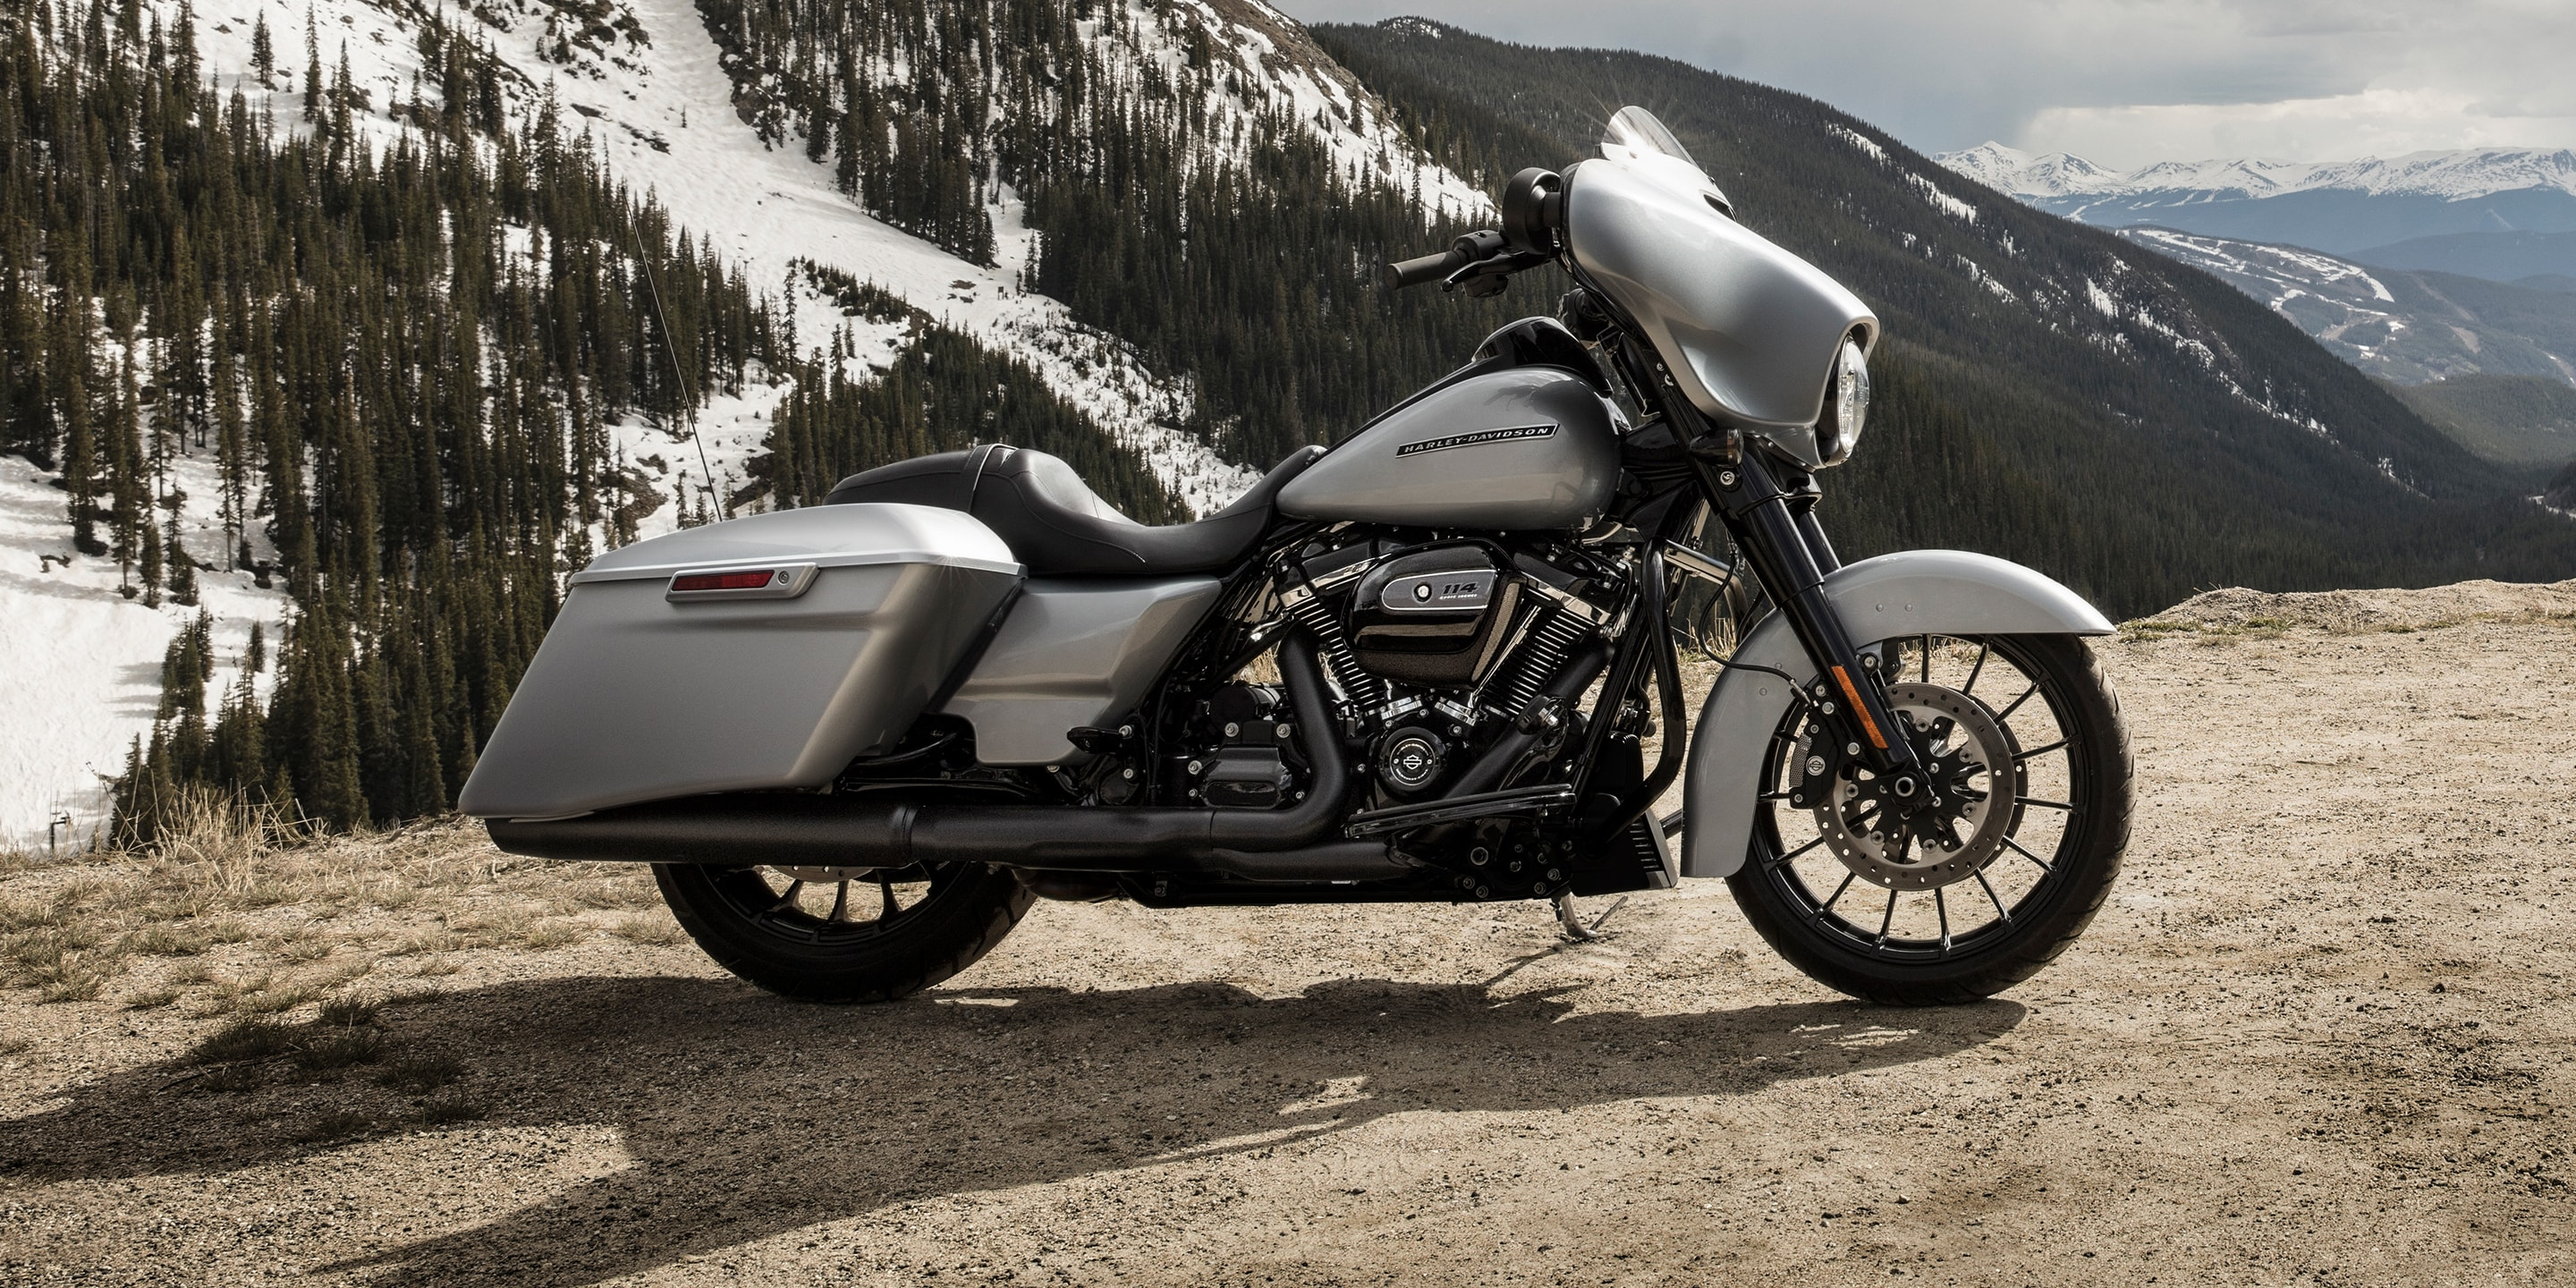 2019 Street Glide Special motorcycle parked by mountain scenery